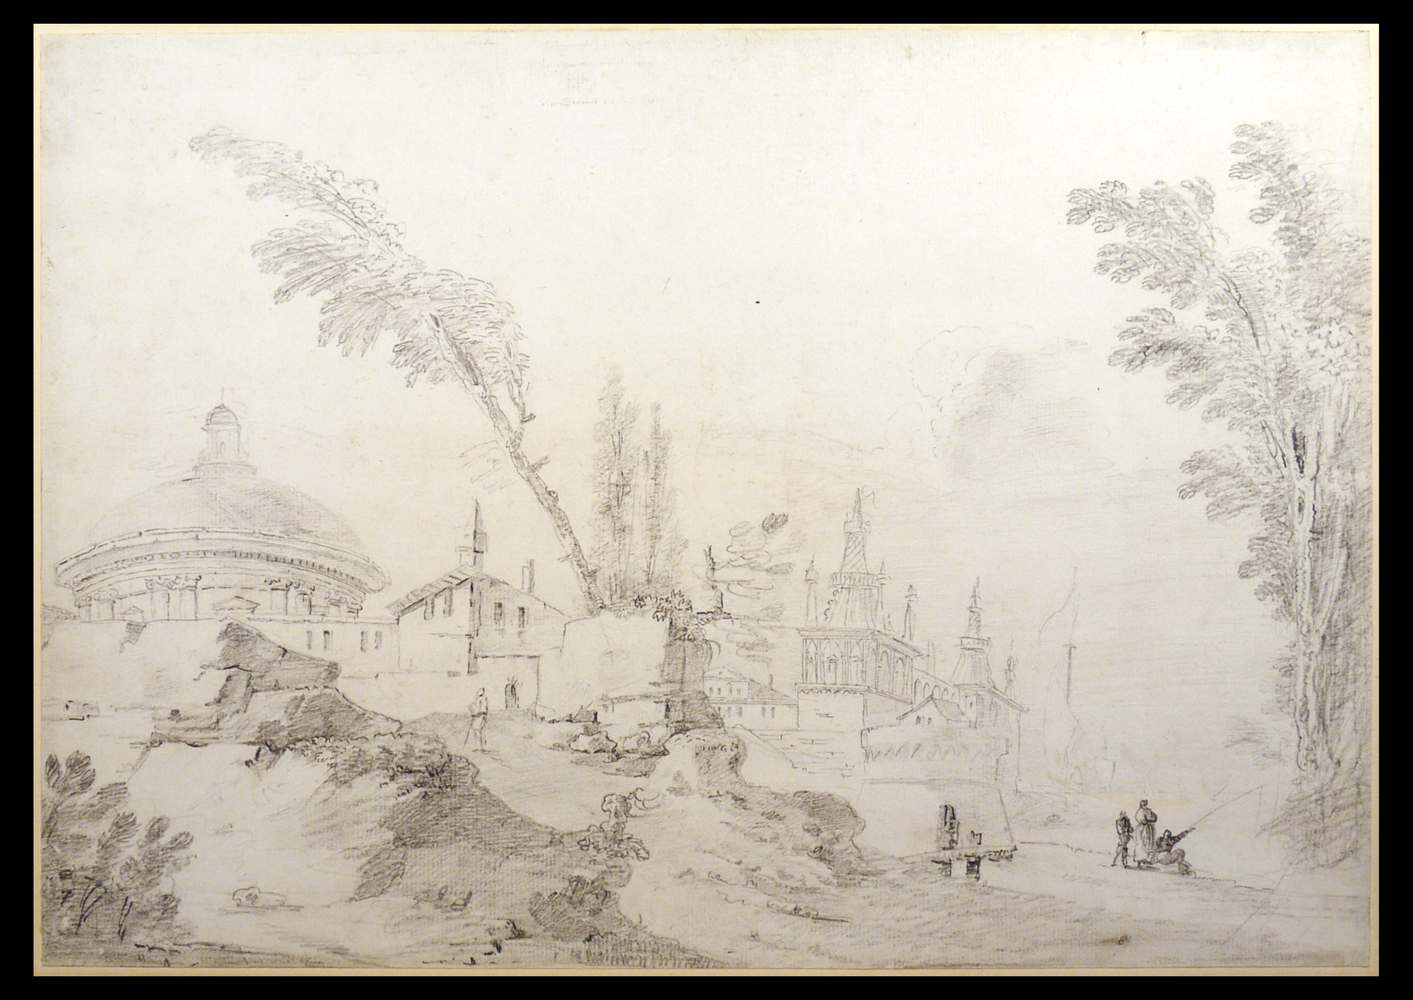 Jean-Baptiste HILAIRE (1753-1822), attributed, Capriccio with Turkish Architecture, 1780-1790